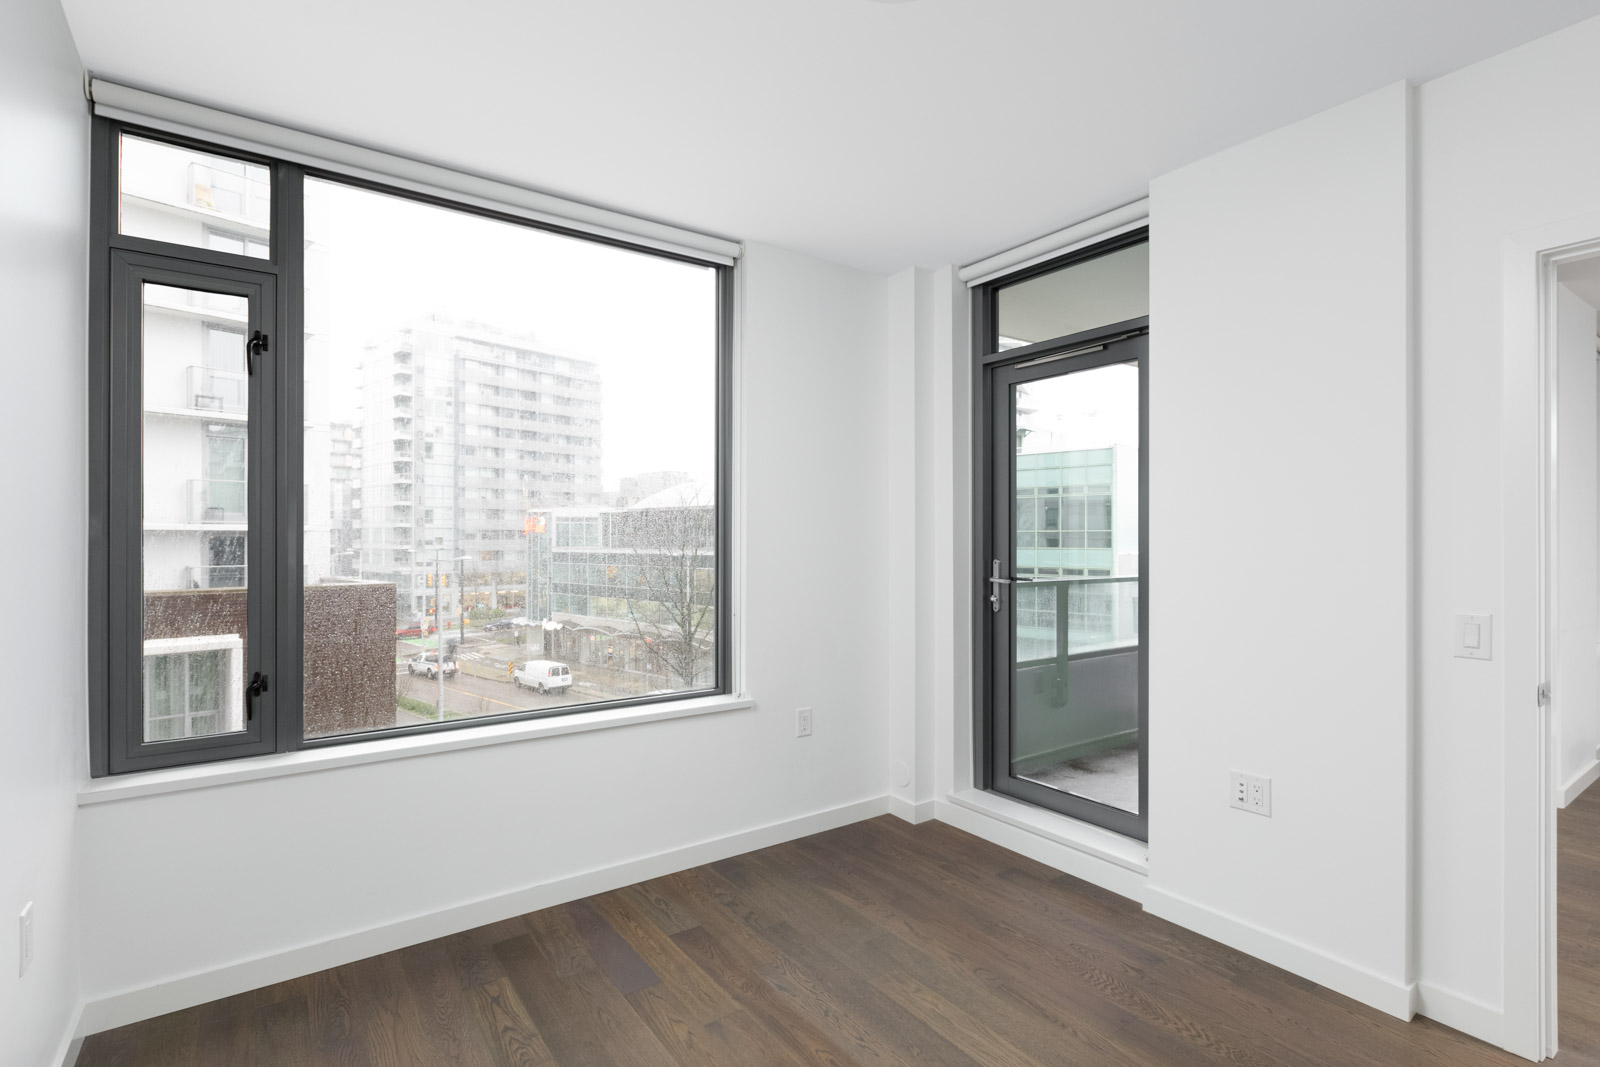 living room with hardwood floors and window looking outside in olympic village vancouver condo rental managed by birds nest properties